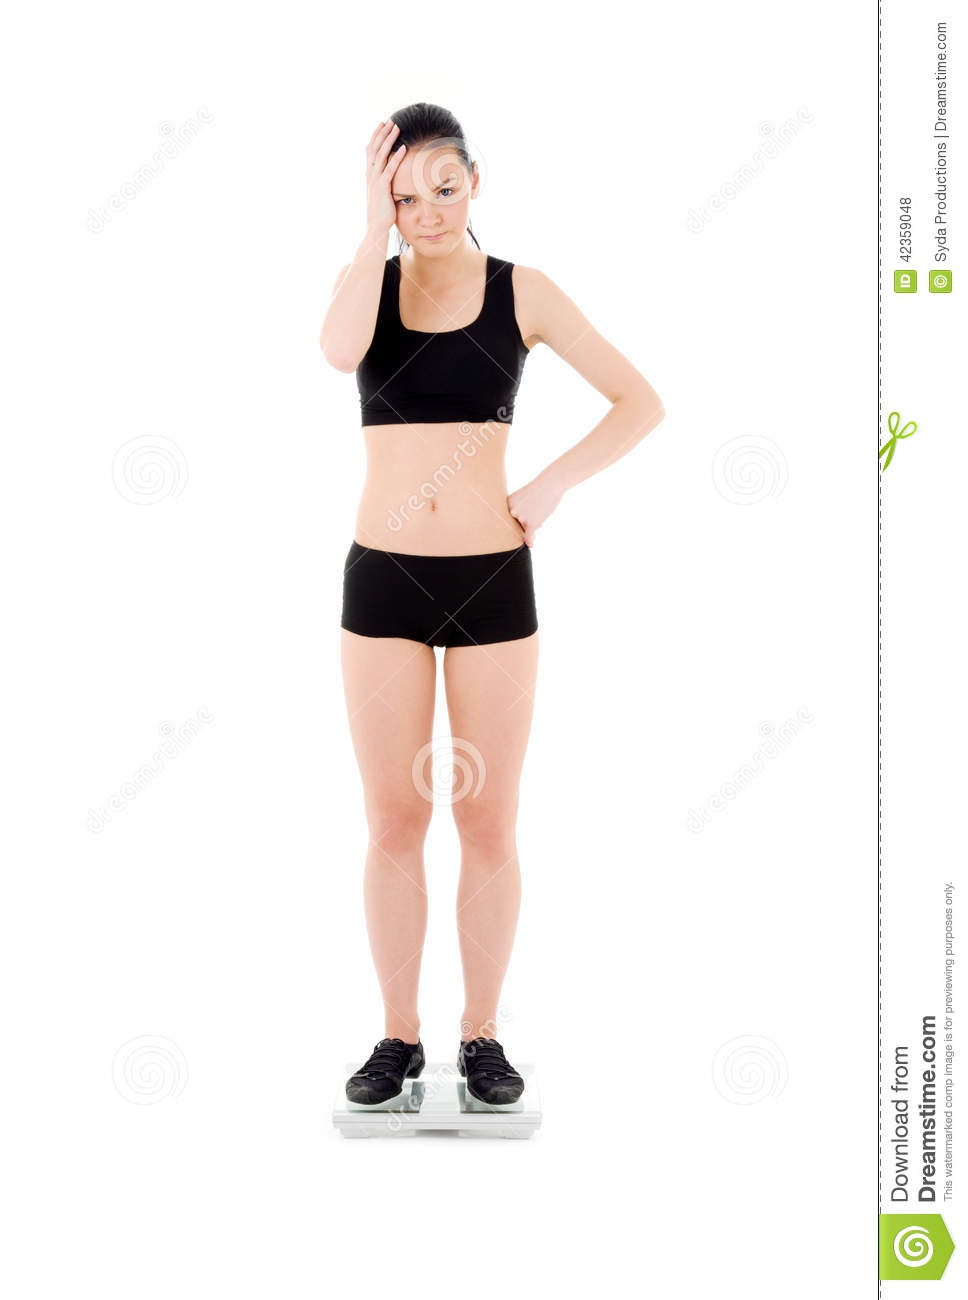 Unhappy woman on scales